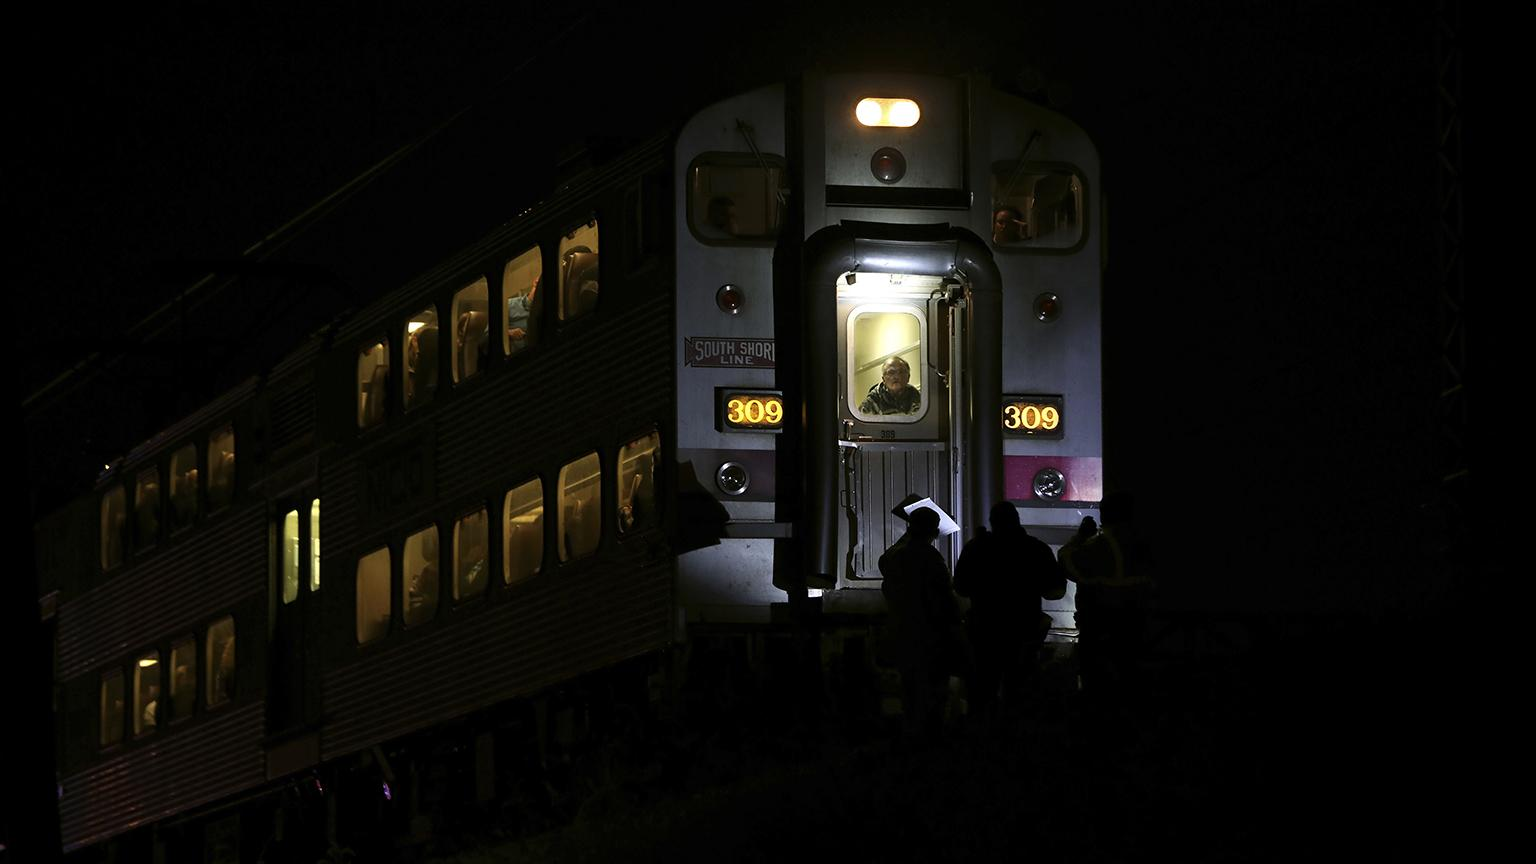 Passengers sit on a train while police officers work the scene where two officers were killed after they were struck Monday, Dec. 17, 2018 by a South Shore train near 103rd Street and Dauphin Avenue. (E. Jason Wambsgans / Chicago Tribune via AP)